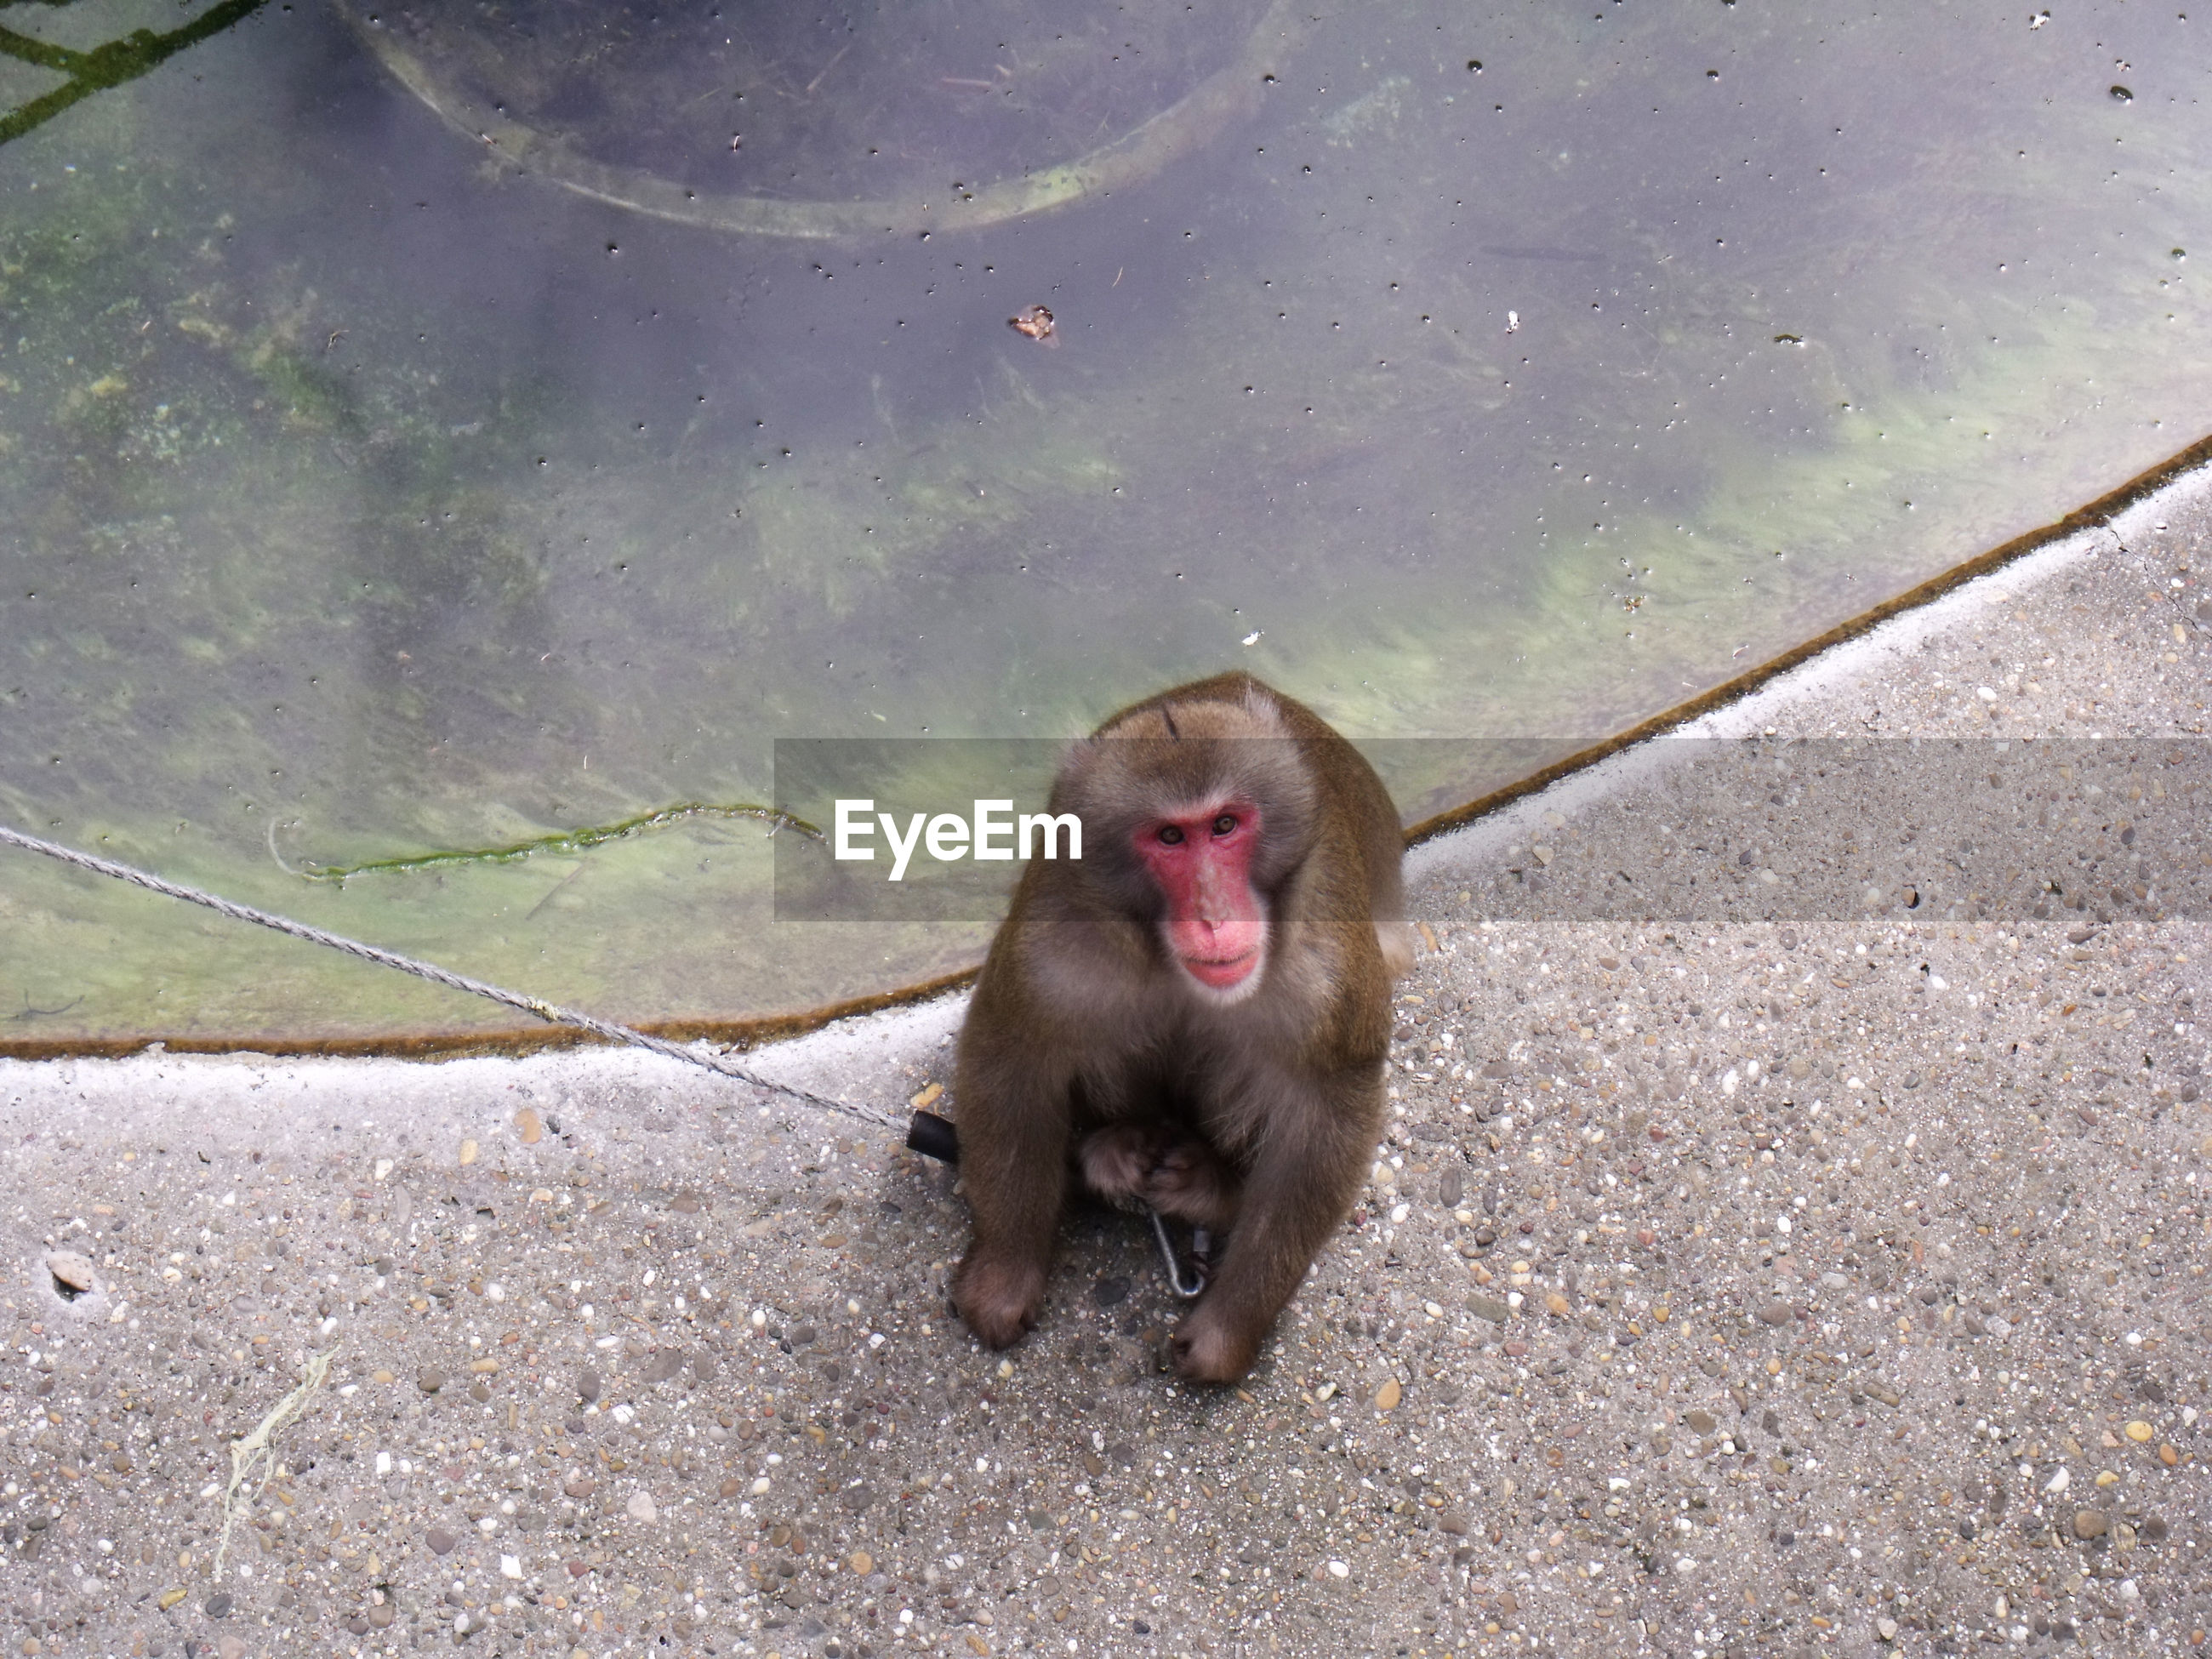 Portrait of monkey at zoo